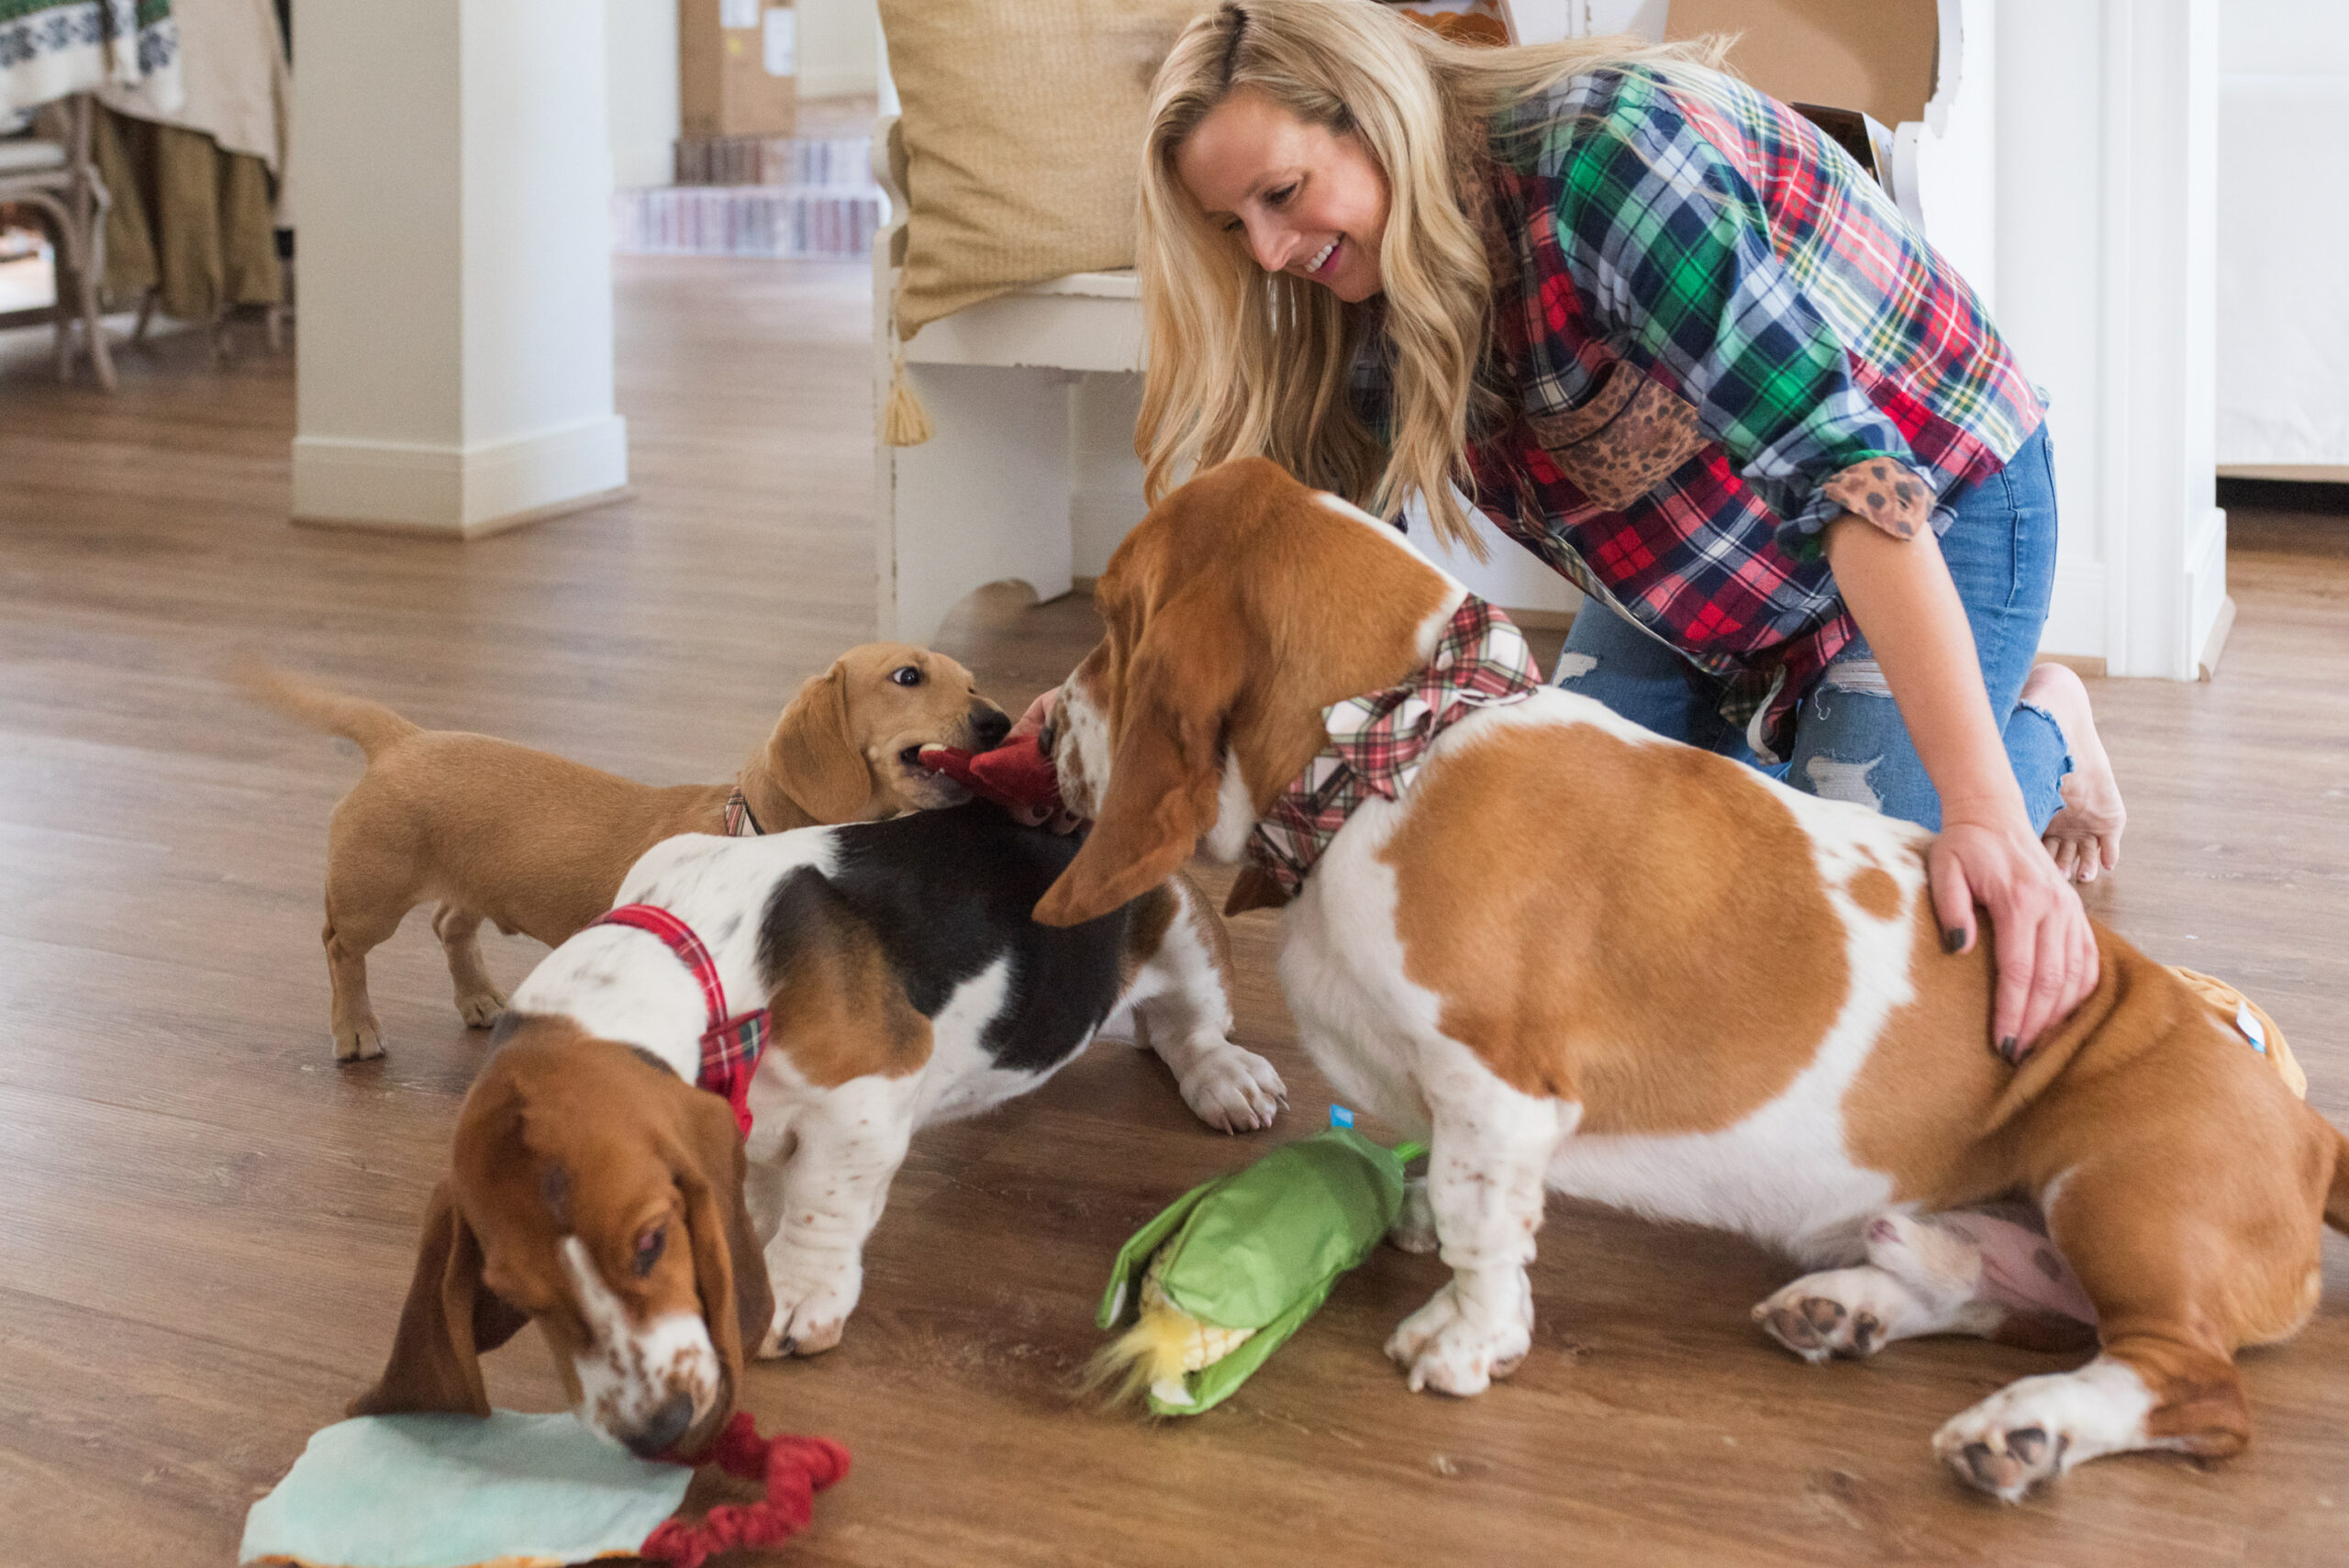 Barkbox Toys by popular Houston lifestyle blog, Fancy Ashley: image of woman playing with some BarkBox toys with her three dogs.